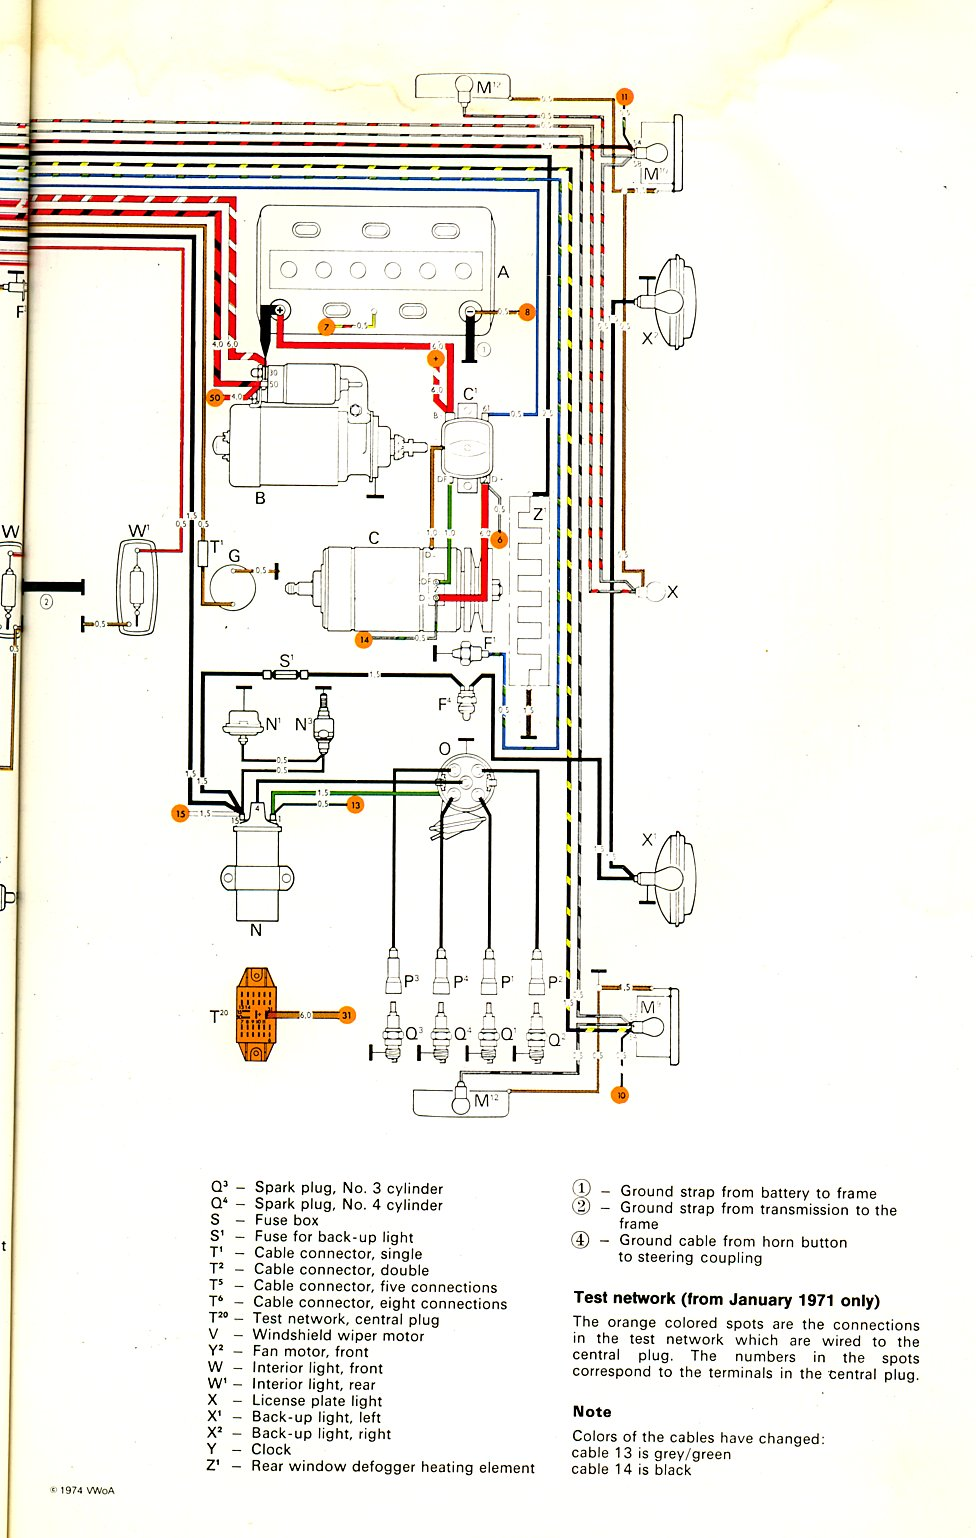 thesamba com type 2 wiring diagrams rh thesamba com 2007 Passat Fuse Box  Diagram 1993 Cabriolet Fuse Box Diagram